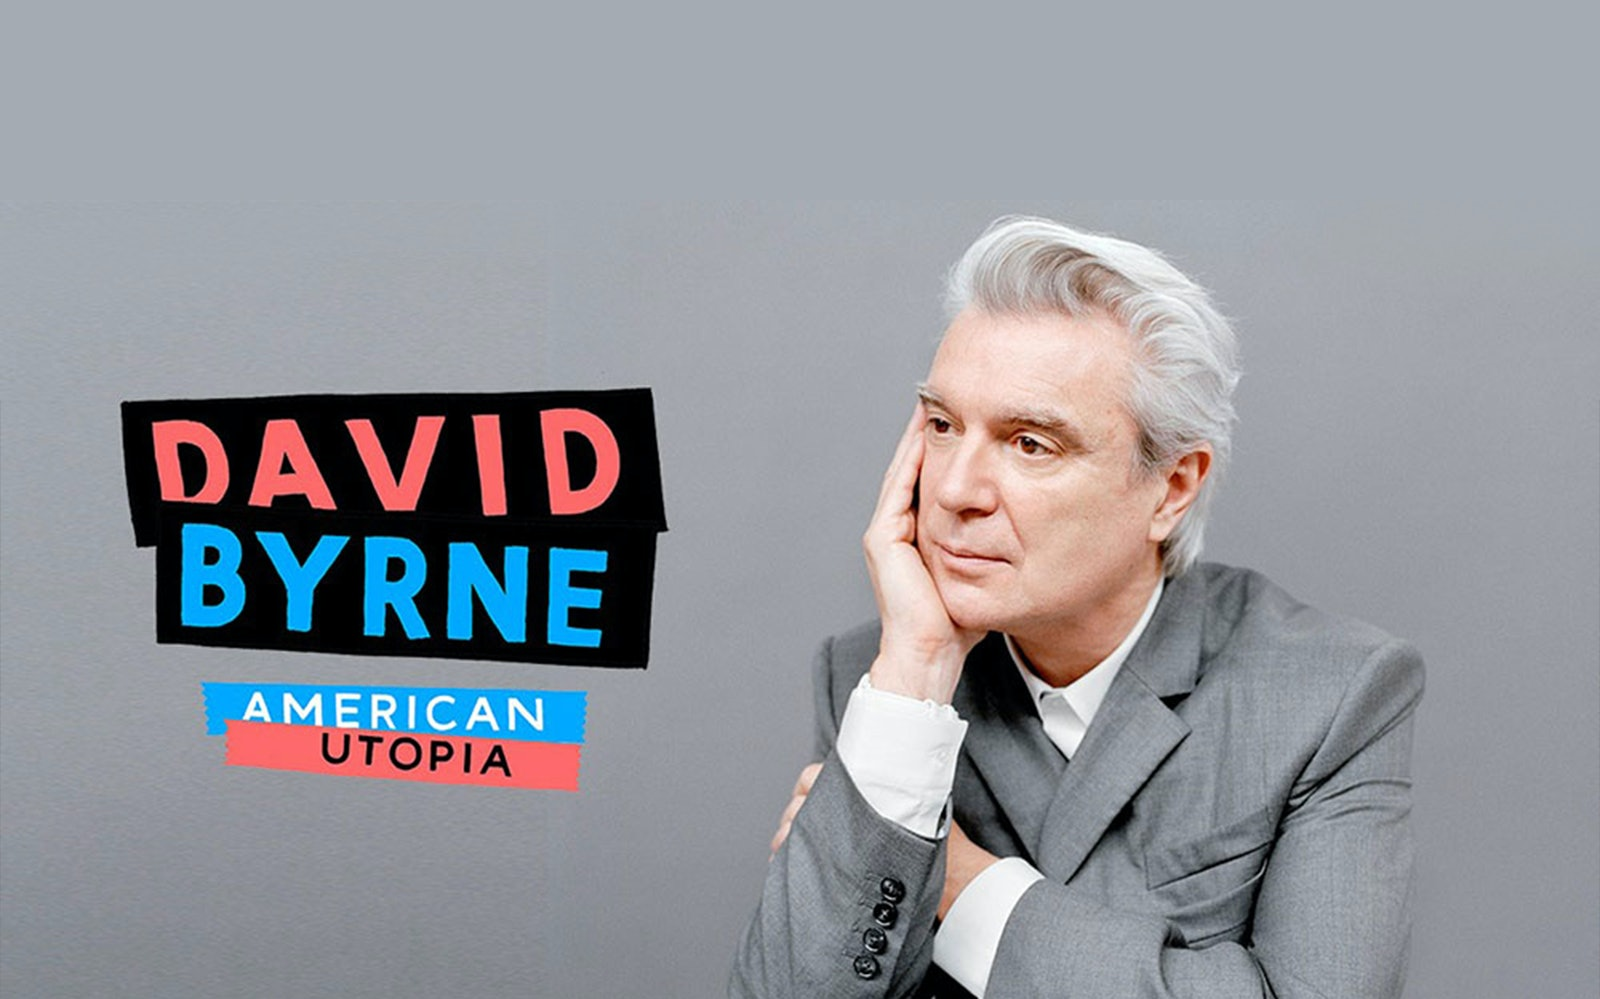 Hudson-Theatre-Seating-Chart David Byrne's American Utopia broadway Show